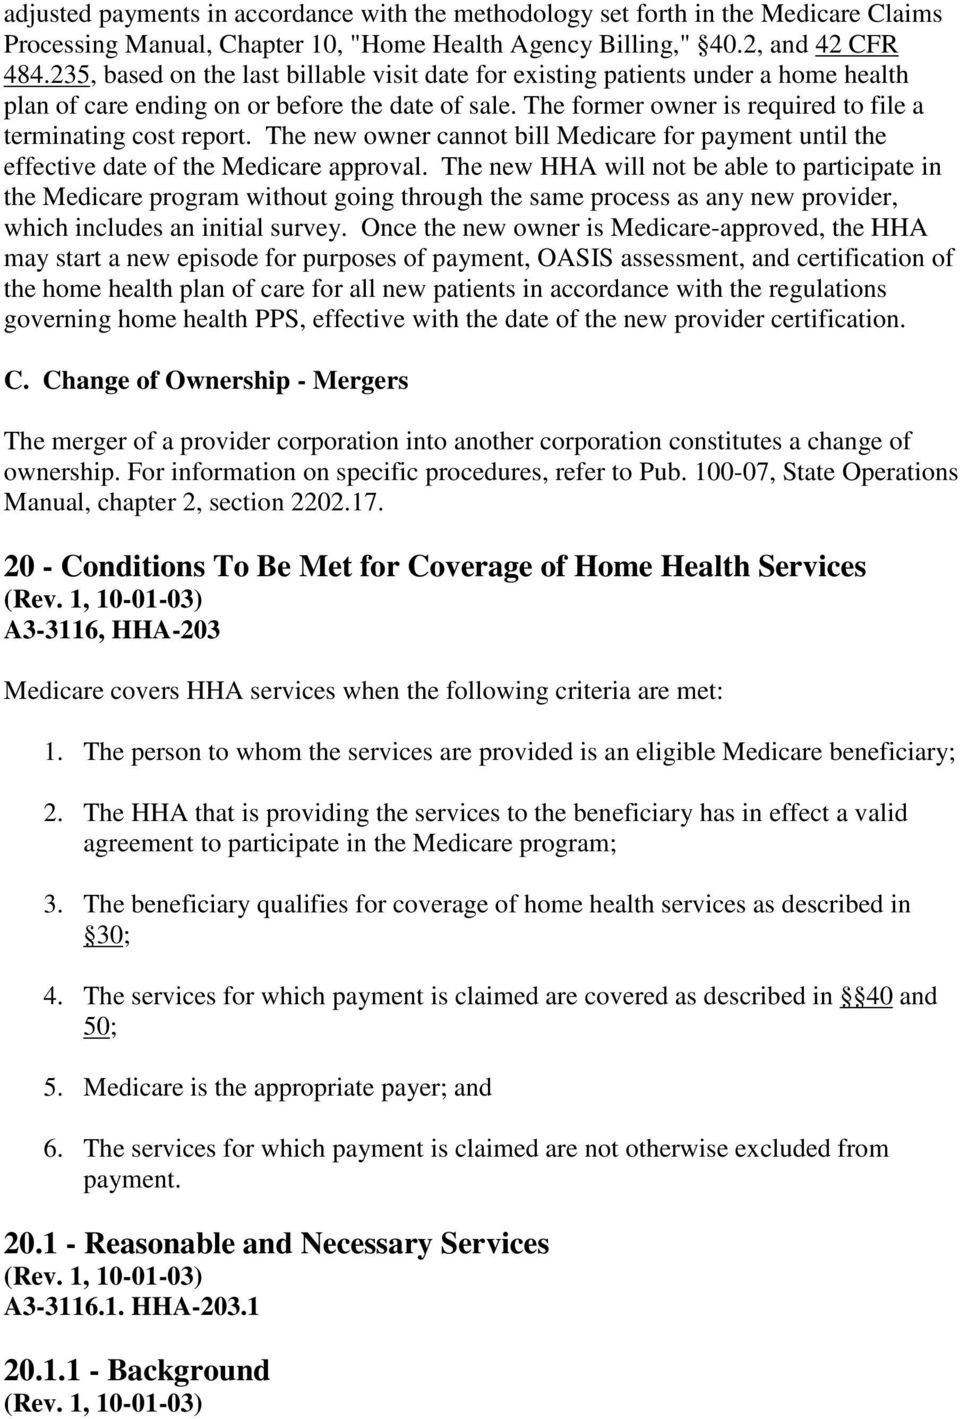 The new owner cannot bill Medicare for payment until the effective date of the Medicare approval.